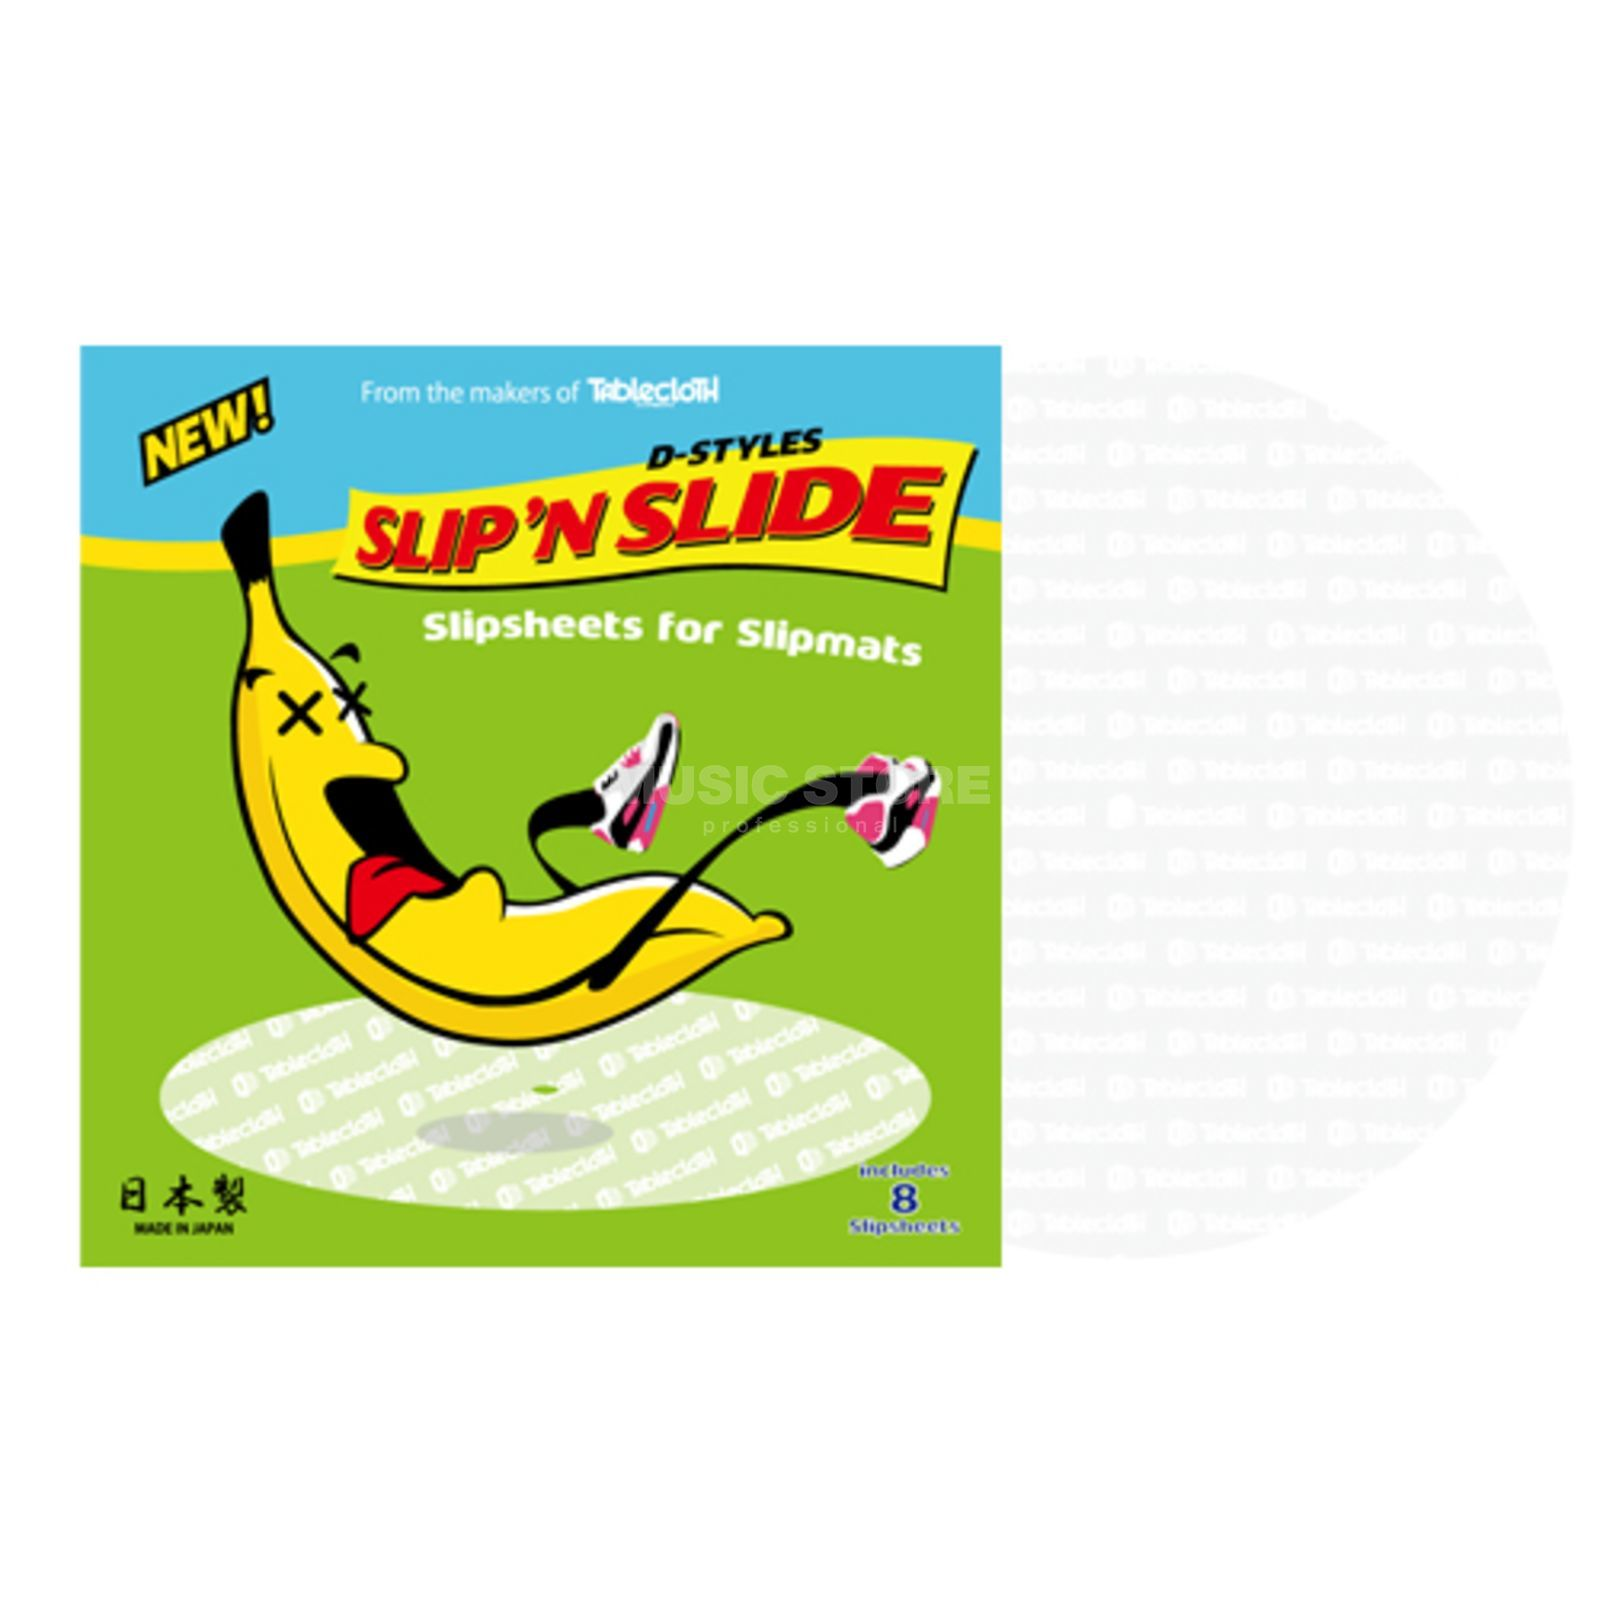 Tablecloth D-Style Slip…n Slide 8x Slipsheets for Slipmats Produktbillede